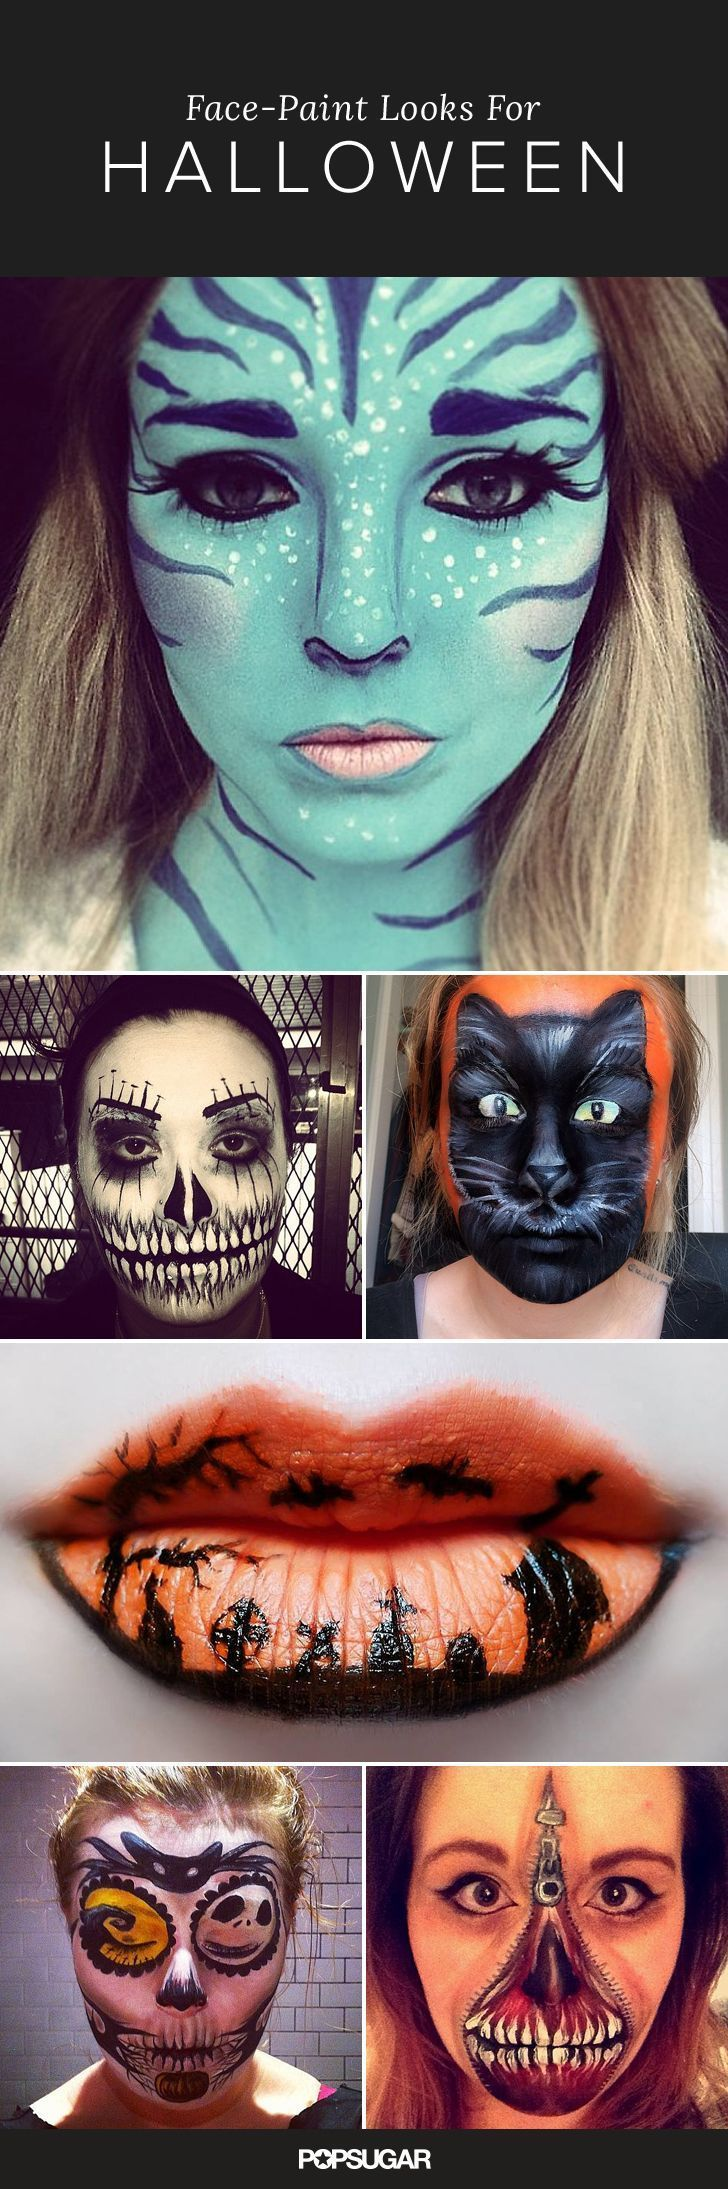 13 terrifyingly cool face paint looks to steal the show on halloween halloween beauty. Black Bedroom Furniture Sets. Home Design Ideas